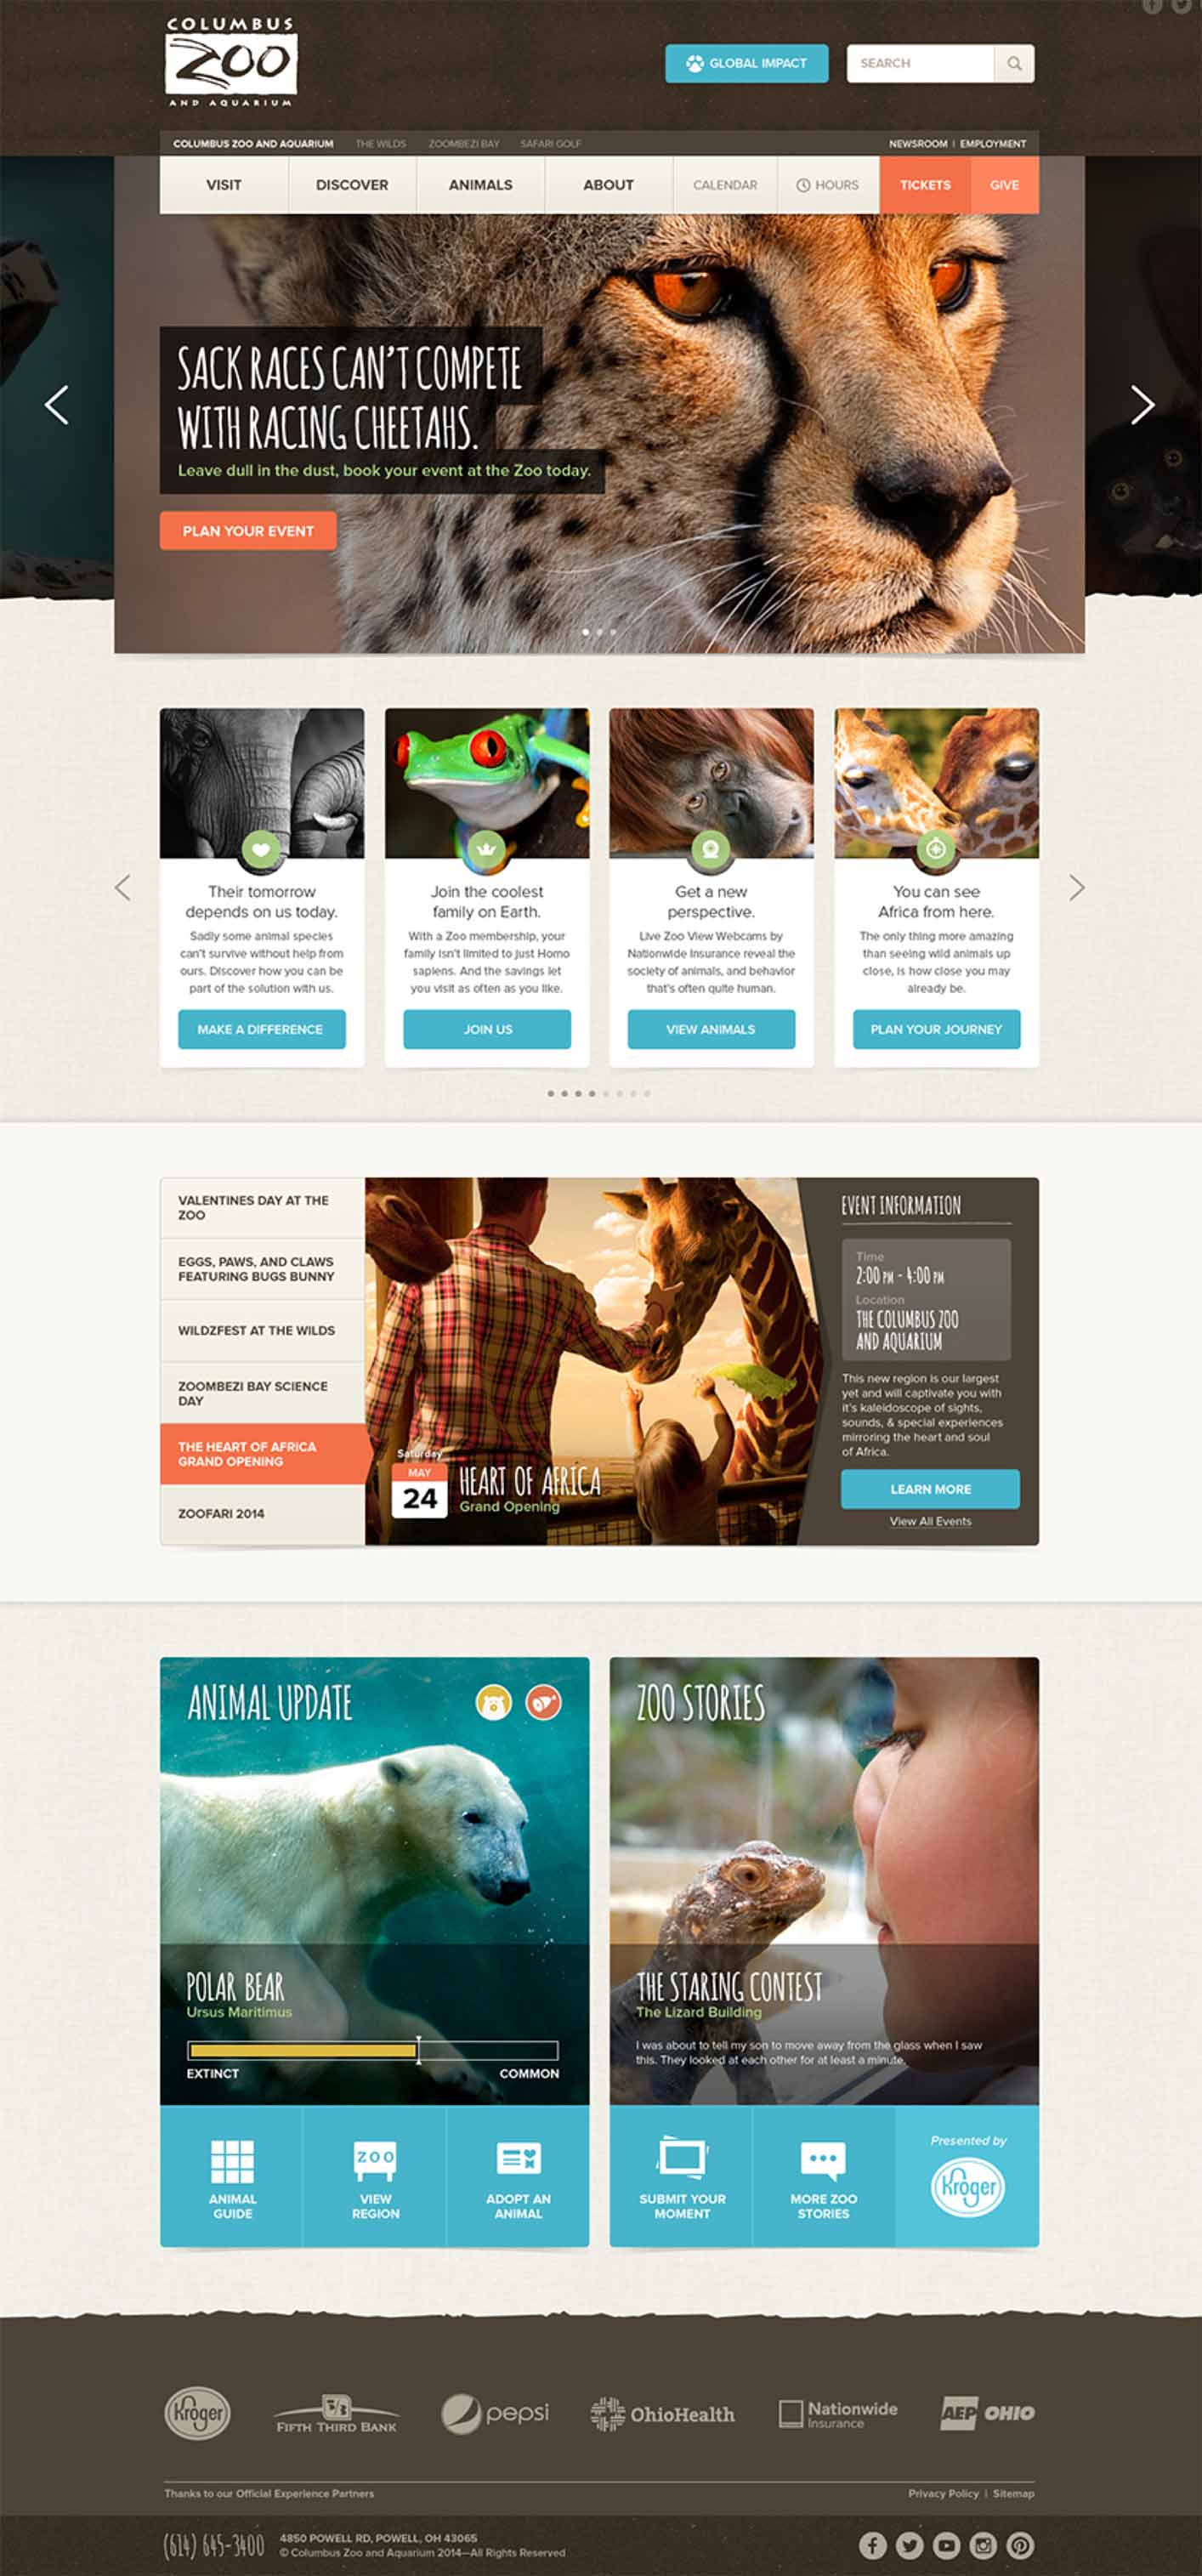 Columbus Zoo Website - Full Screenshot